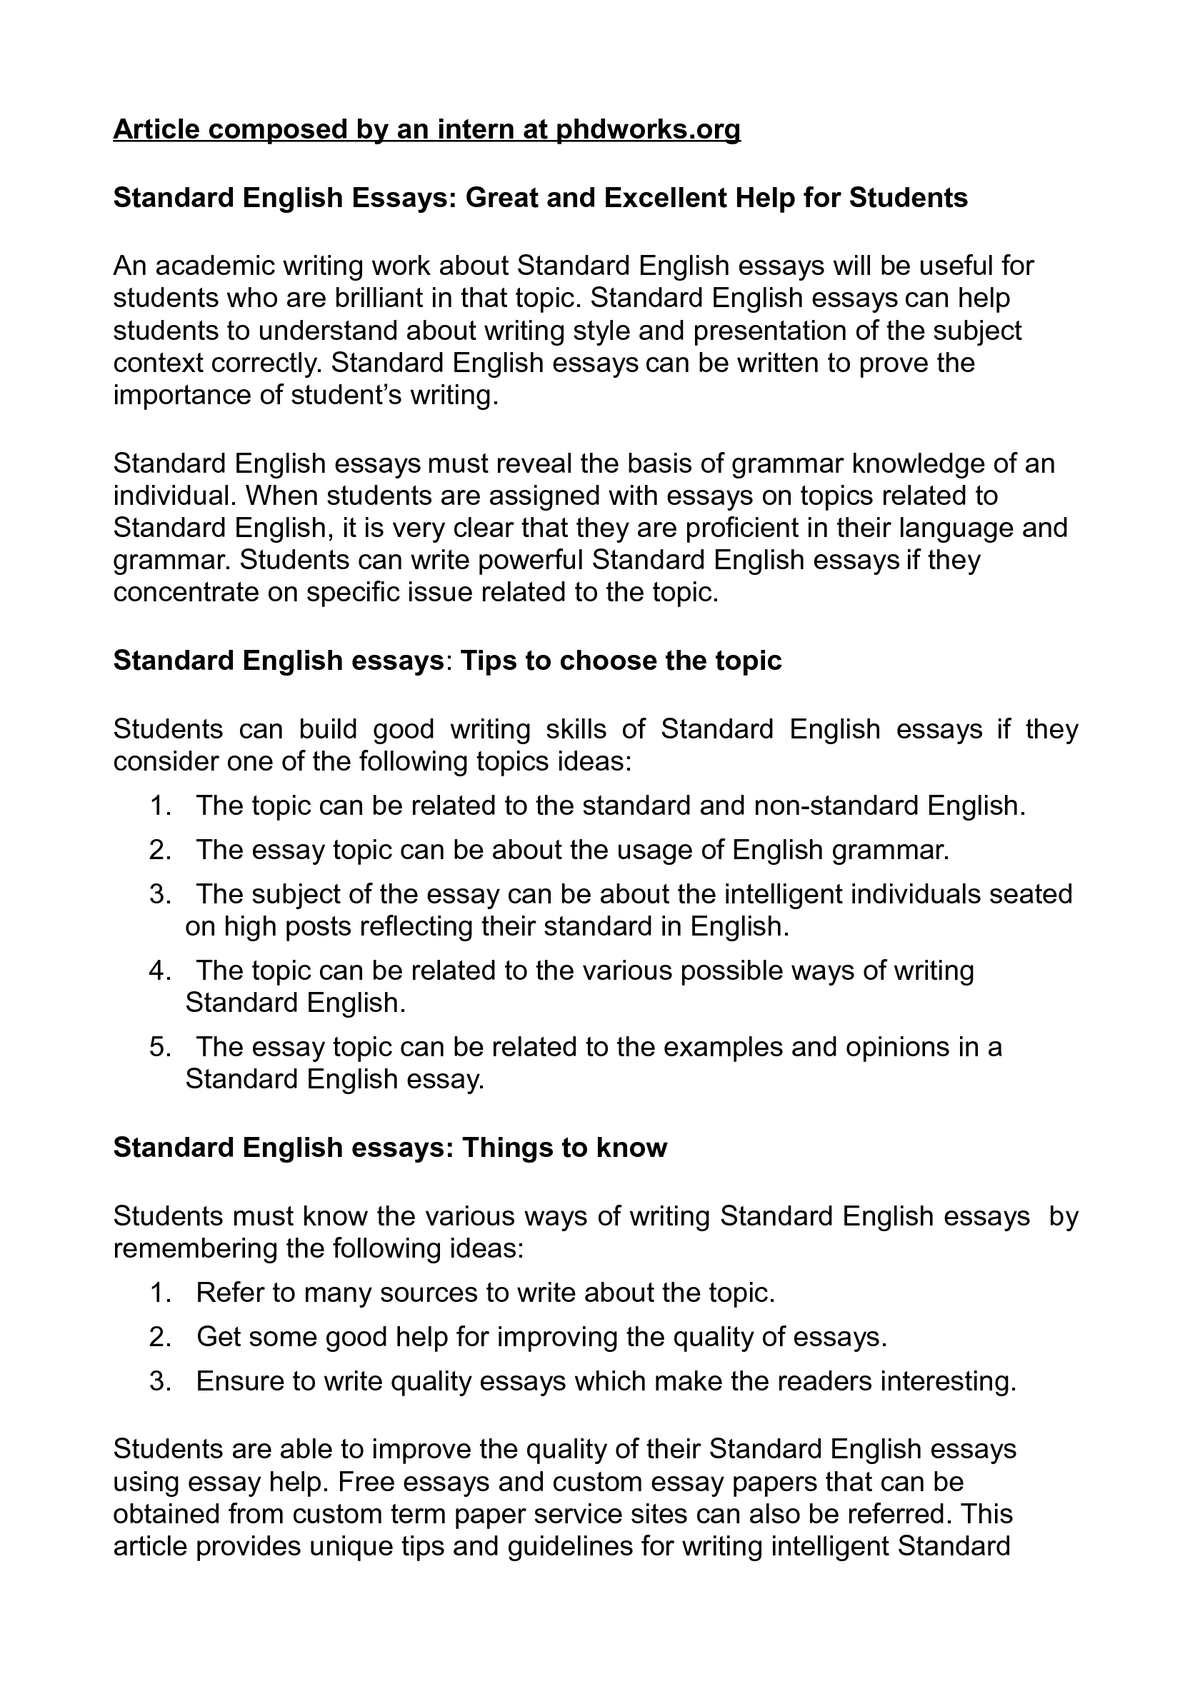 calamo  standard english essays great and excellent help for students